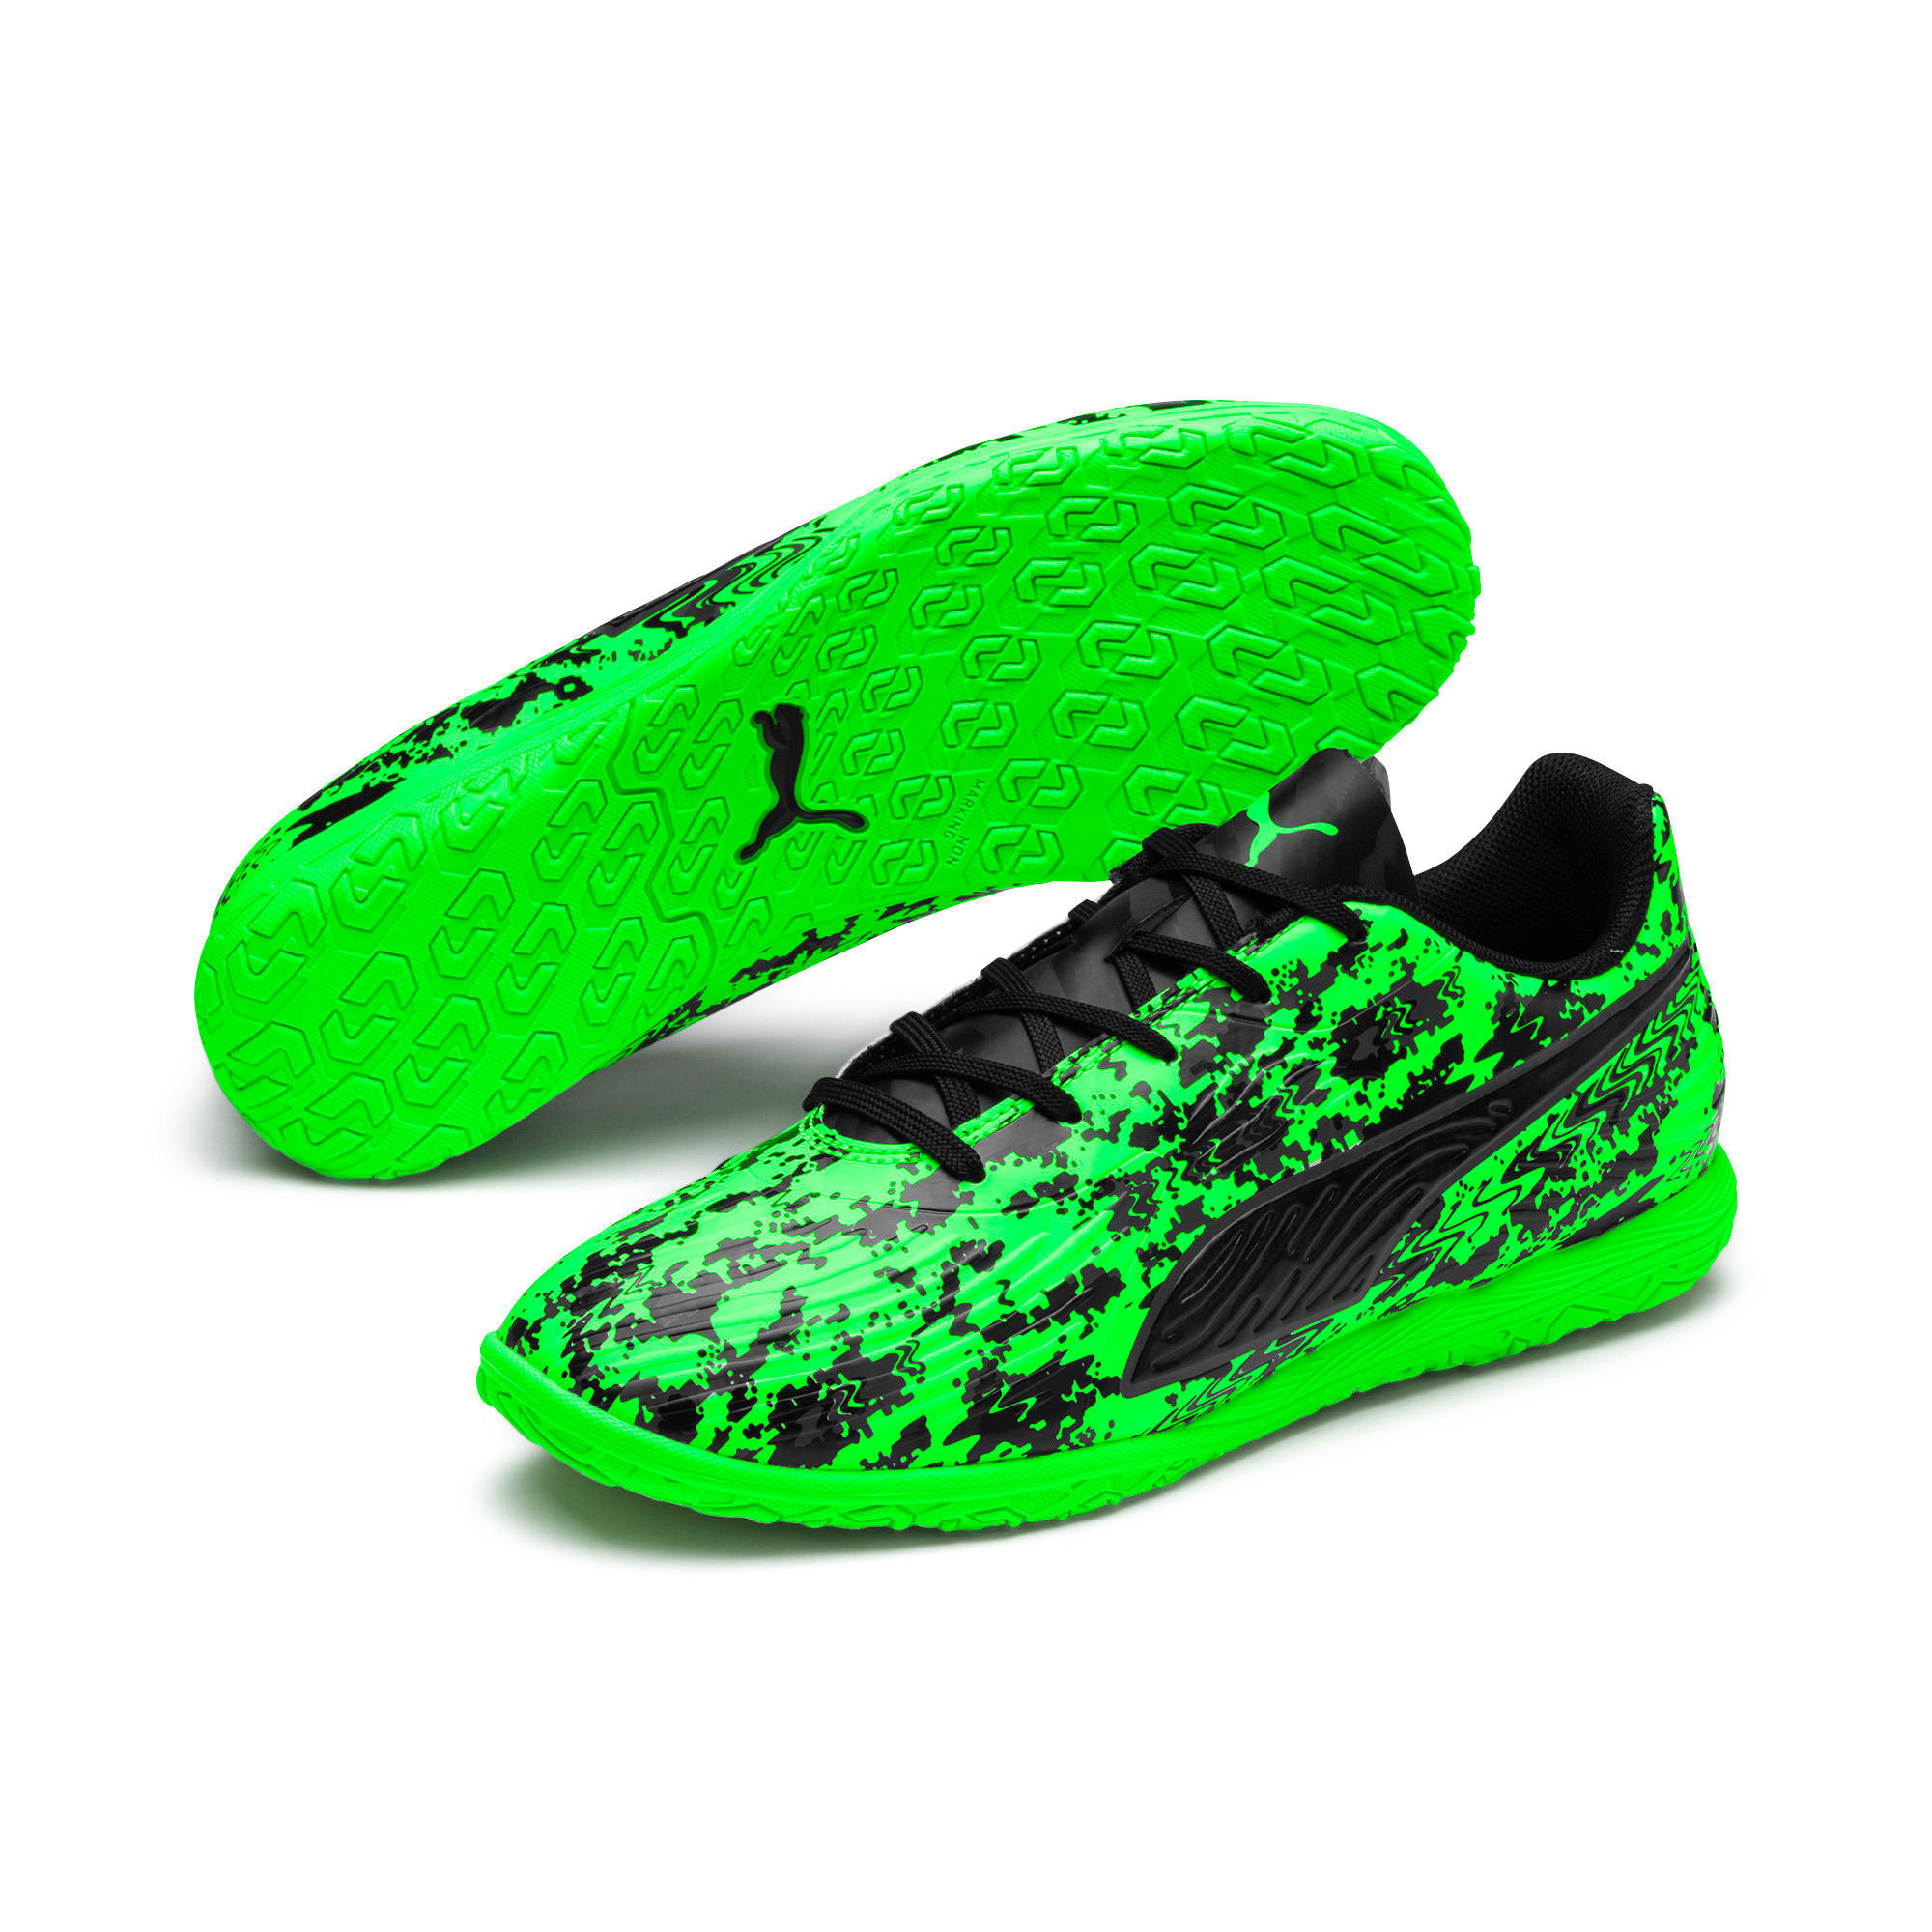 Miniatura 2 de Zapatos de fútbol PUMA ONE 19.4 IT JR, Green Gecko-Black-Gray, mediano